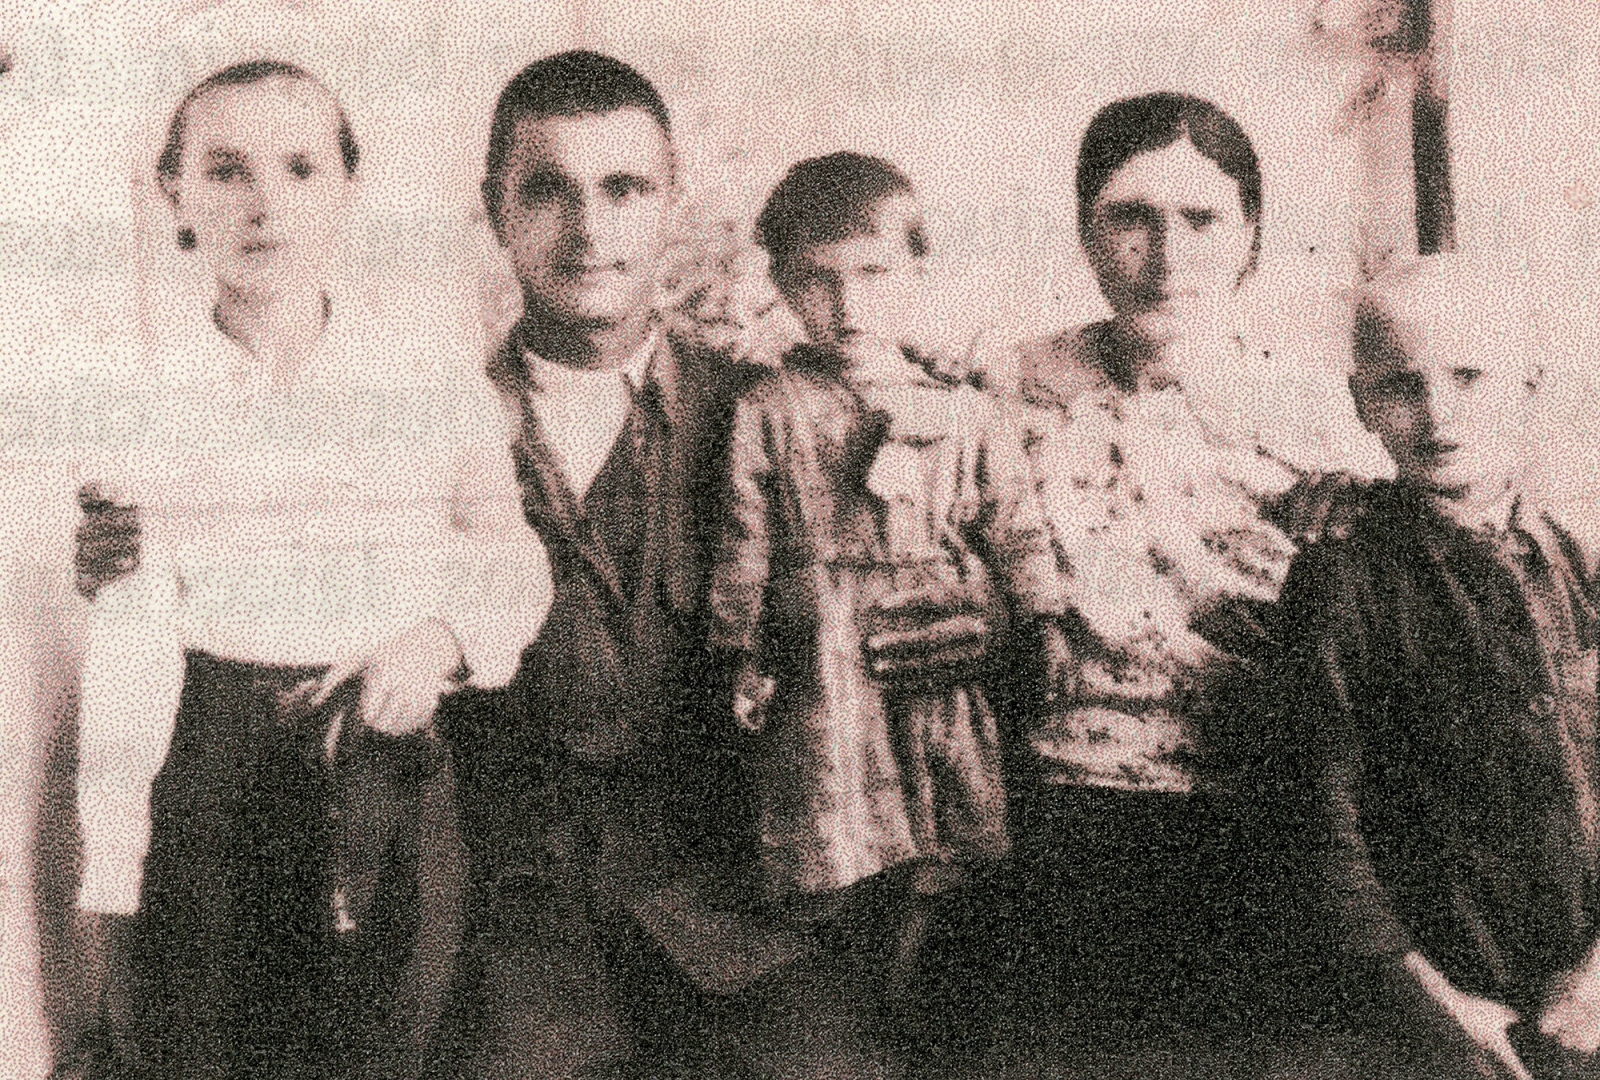 "We try to recover a lost image of Ana and Pasha with their family and their father, Nichifor, who fled the Soviets. Nichifor was considered a dissident due to his and his brother's (a local mayor in Moldova) staunch opposition to the Bolsheviks. The details of what happened to their father after they were deported are hazy for Ana and Pasha. They only know that he was captured in Romania and sent to a gulag near Odessa. He died in prison of unknown causes. This photo was taken before the family was deported and the original image has been lost. It is impressive to think about the availability of images for this story and how much easier it is to preserve events and memory today, ""The children nowadays are smarter, they remember everything. They are born with mobiles in their hands. We weren't so lucky."" -Pasha Ana remembers the night their father fled, ""One night, around midnight, our father, before fleeing to Romania, knocked on the window and gave us a box of sweets, saying to us, 'Your father is going away alone, I don't know where, but you must listen to your mother because she is staying behind to raise you.'"" They never saw him again."